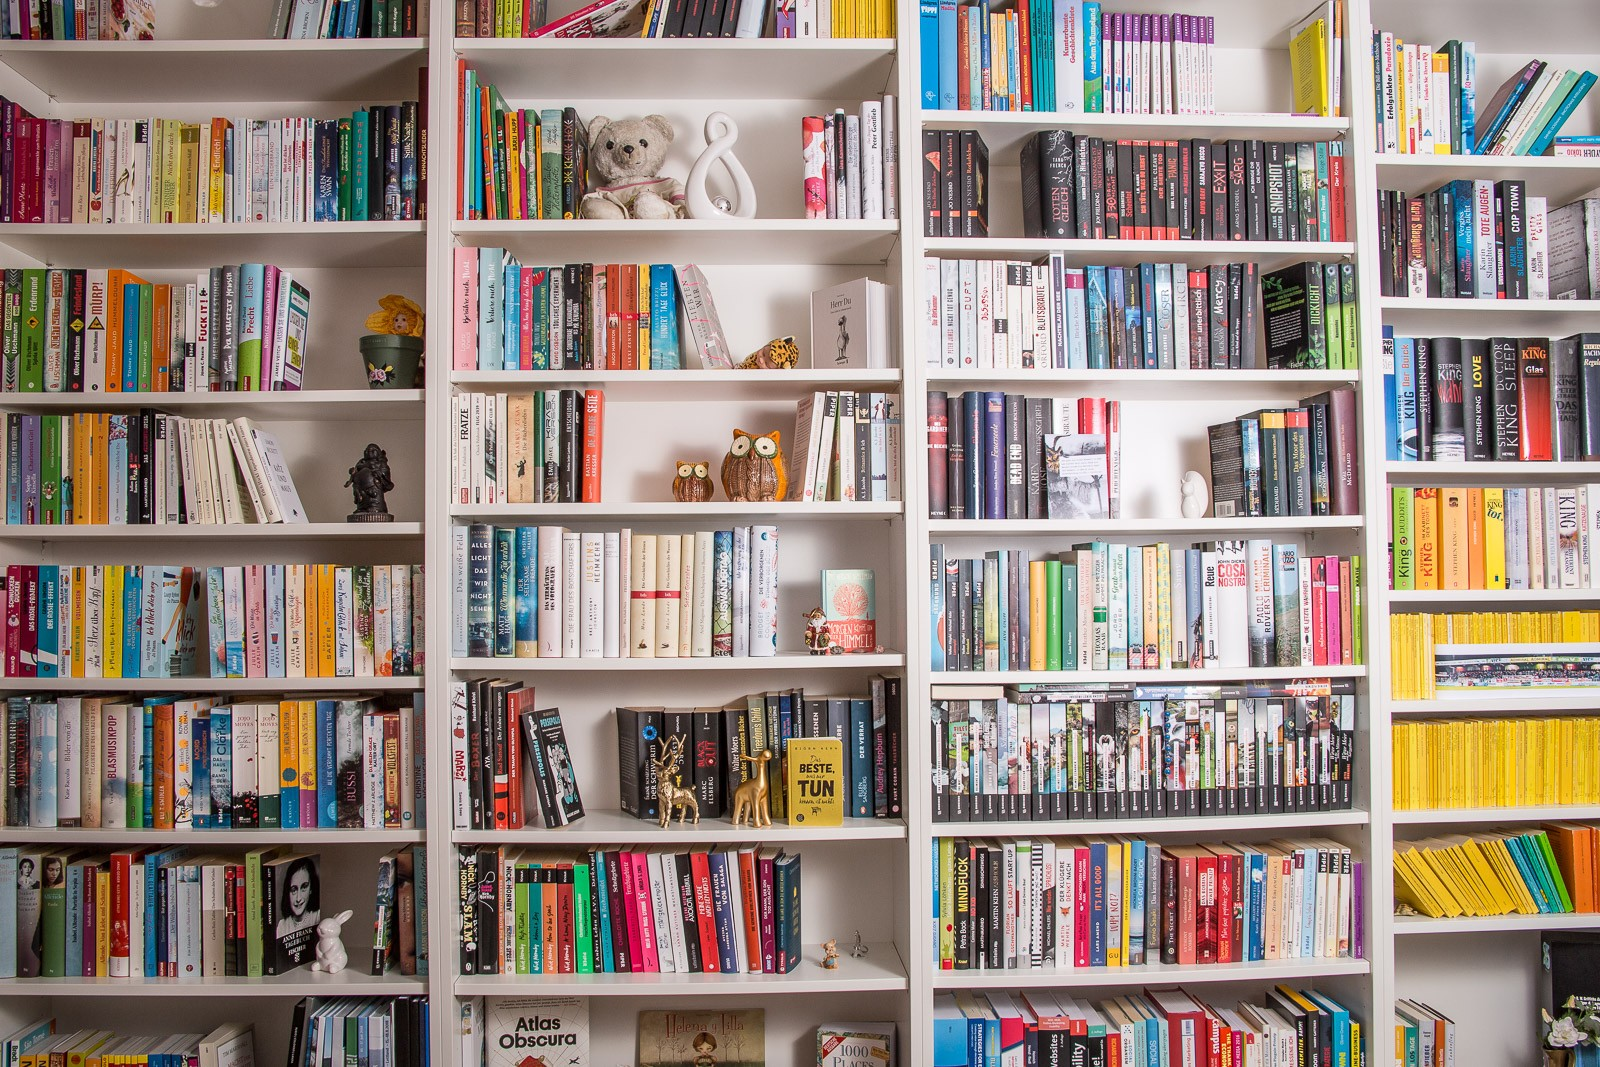 Shelfie - Mein Bücherregal